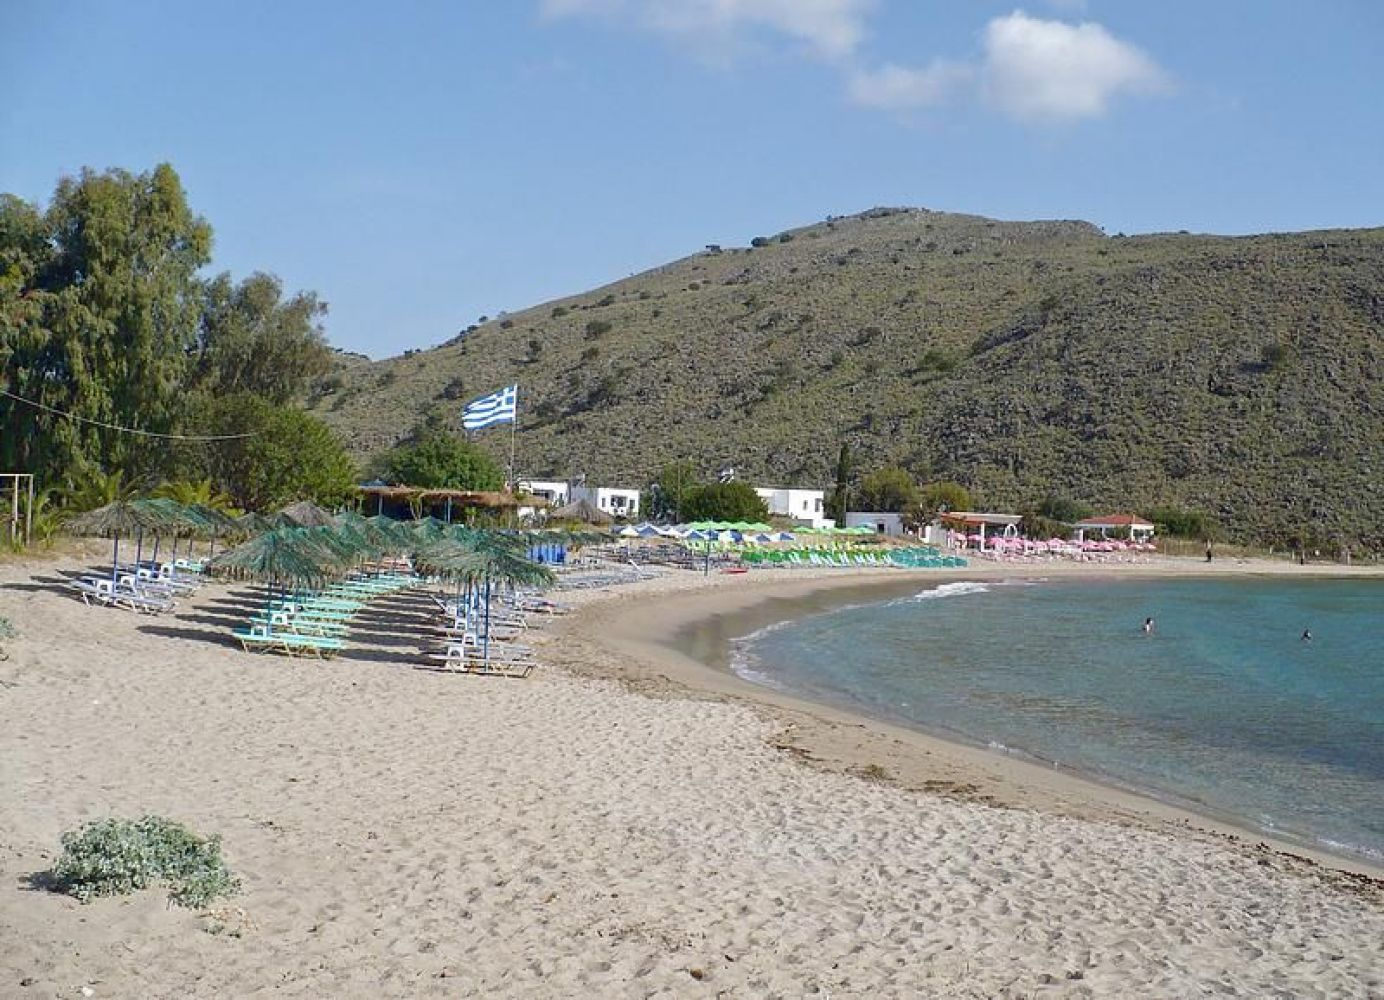 Kalivaki Beach: A Favorite For Families With Children